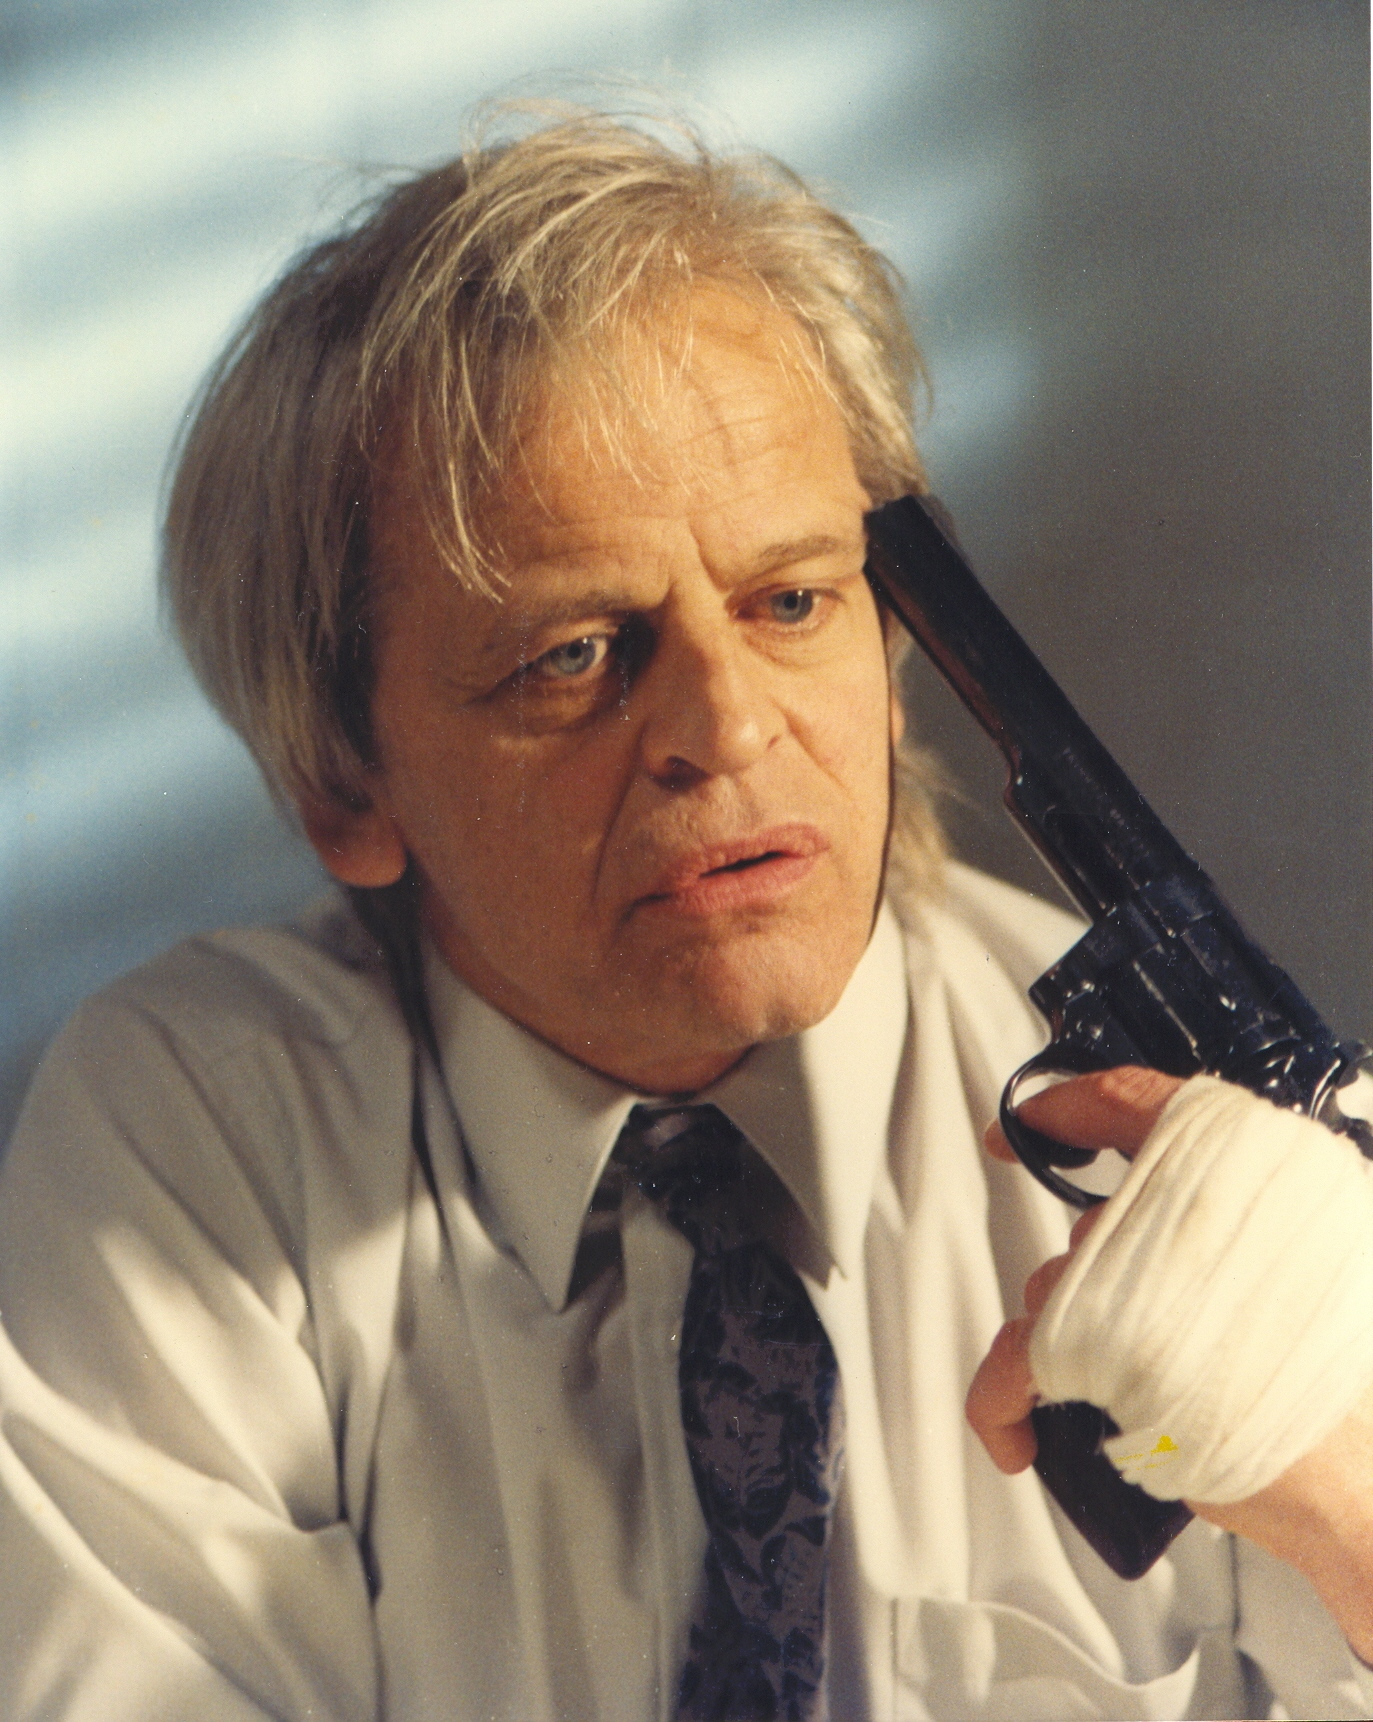 klaus kinski jesus christusklaus kinski jesus christus erlöser, klaus kinski young, klaus kinski gif, klaus kinski jesus christus, klaus kinski interview, klaus kinski pdf, klaus kinski ep, klaus kinski und romy schneider, klaus kinski wikipedia, klaus kinski daughter, klaus kinski fruits of passion, klaus kinski autobiography book, klaus kinski mein liebster feind